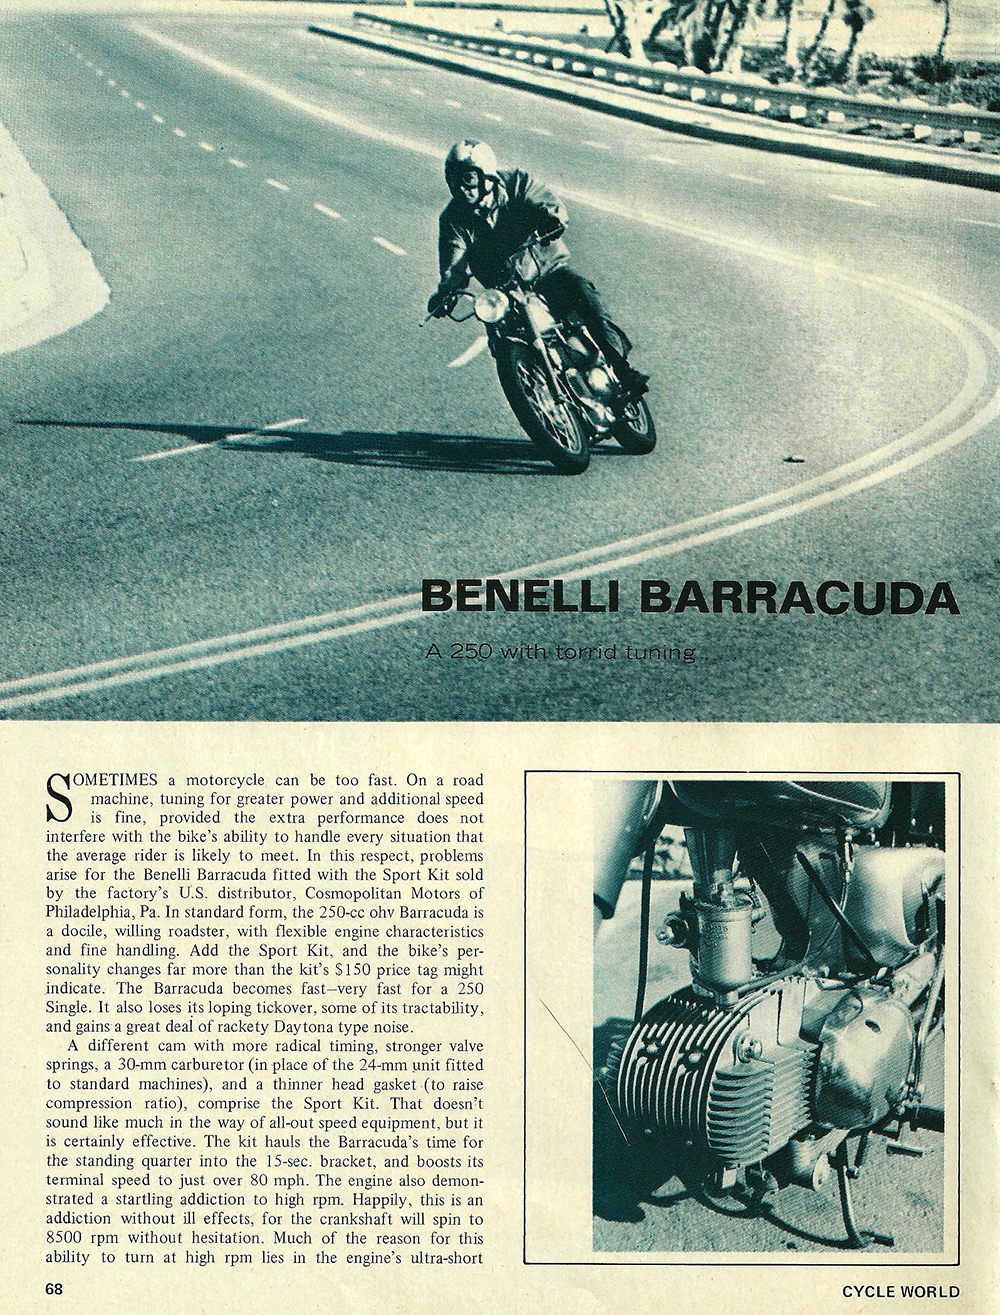 1968 Benelli Barracuda 250 road test 01.jpg